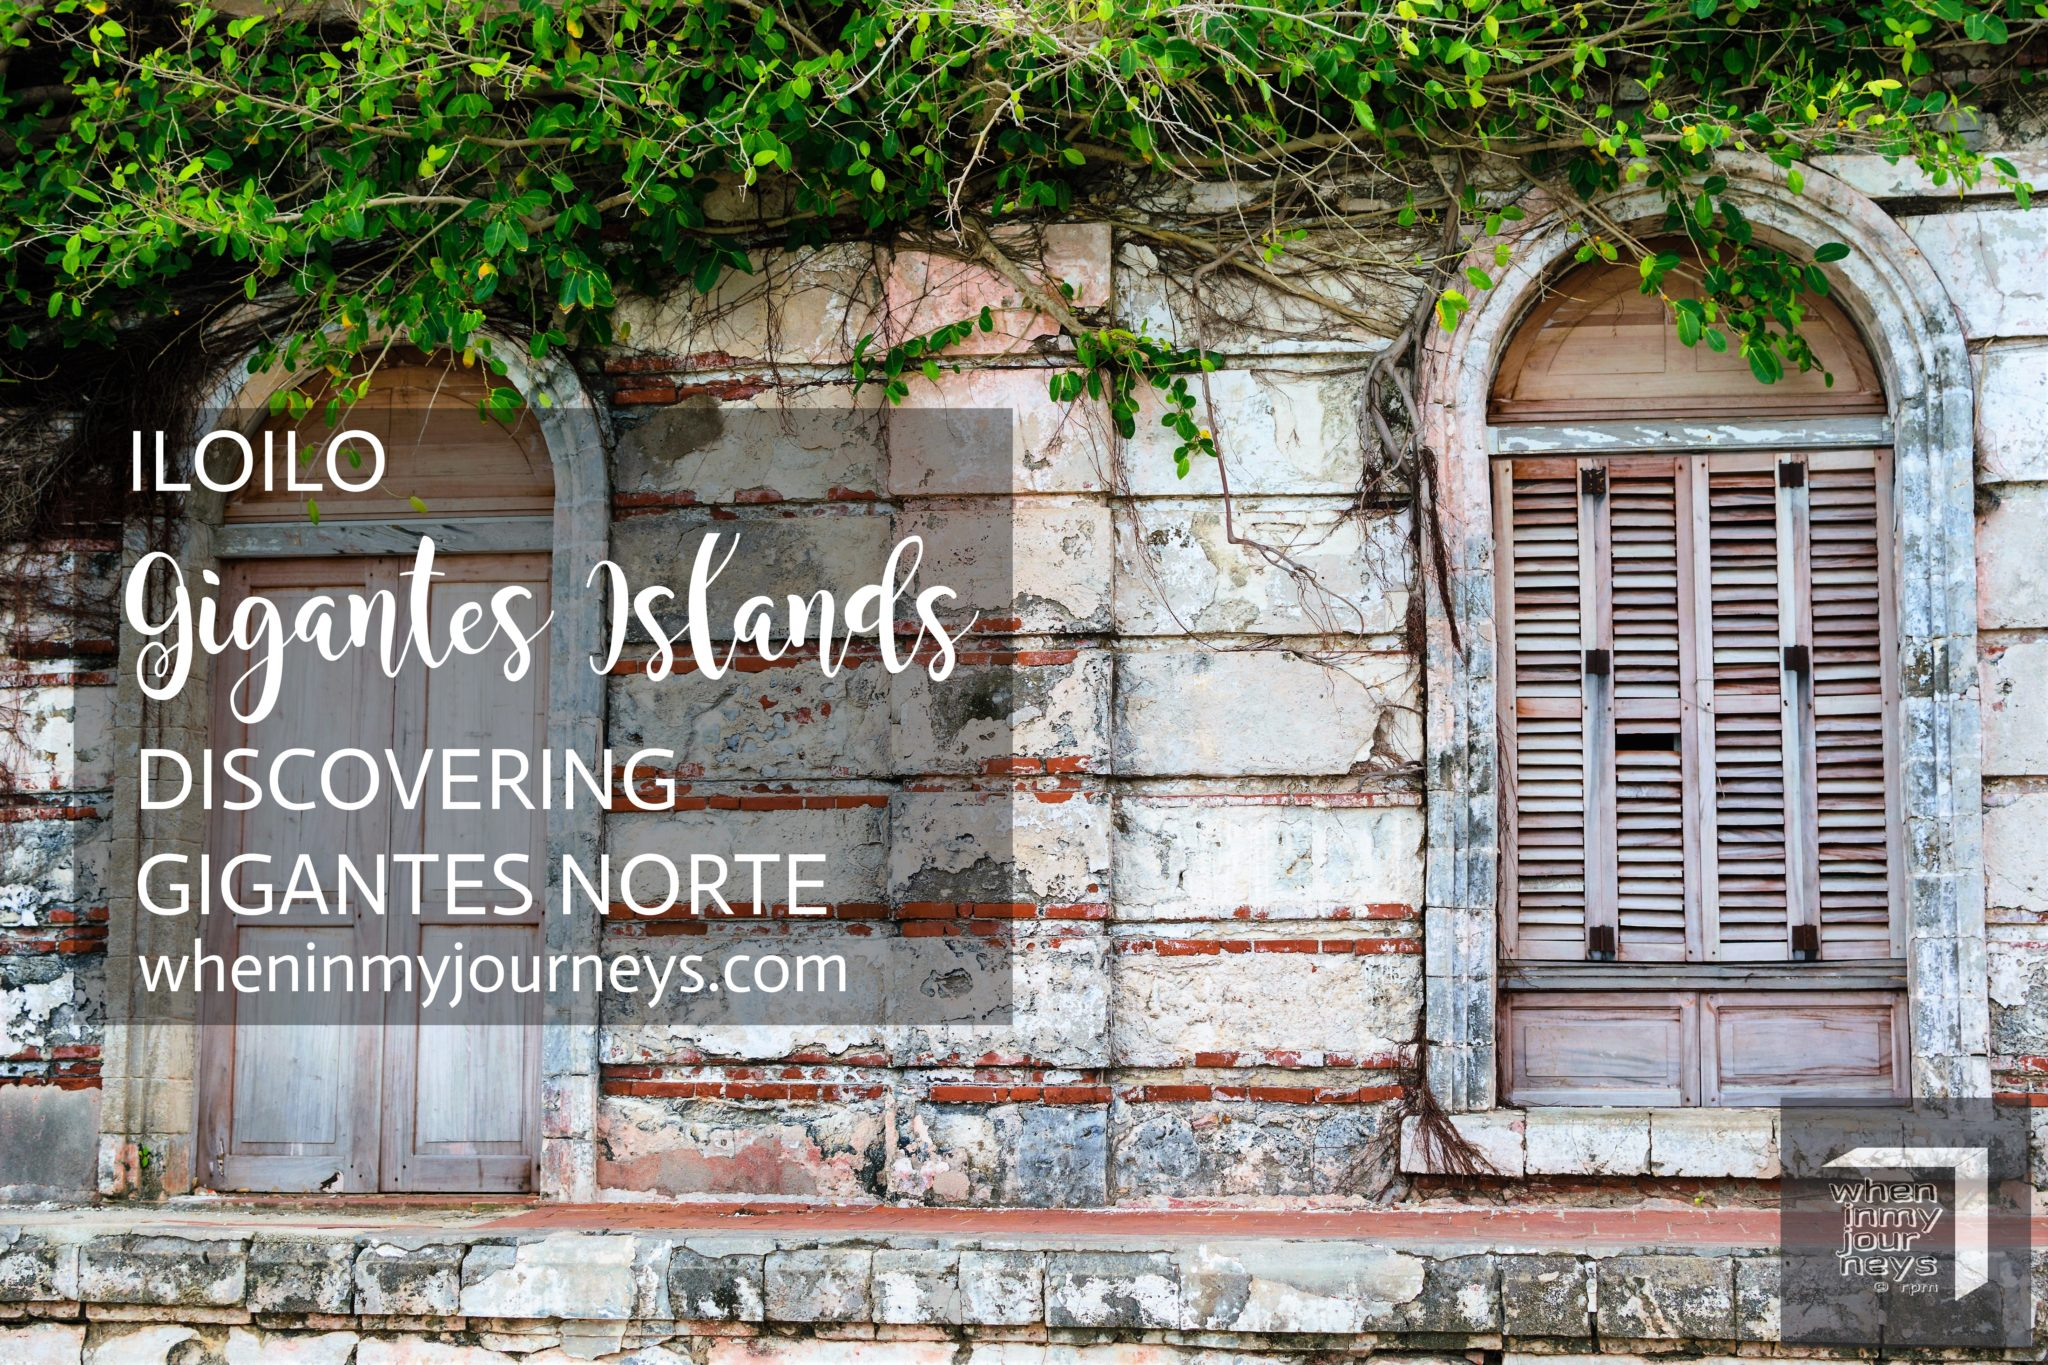 Gigantes Islands Discovering Gigantes Norte Portrait3